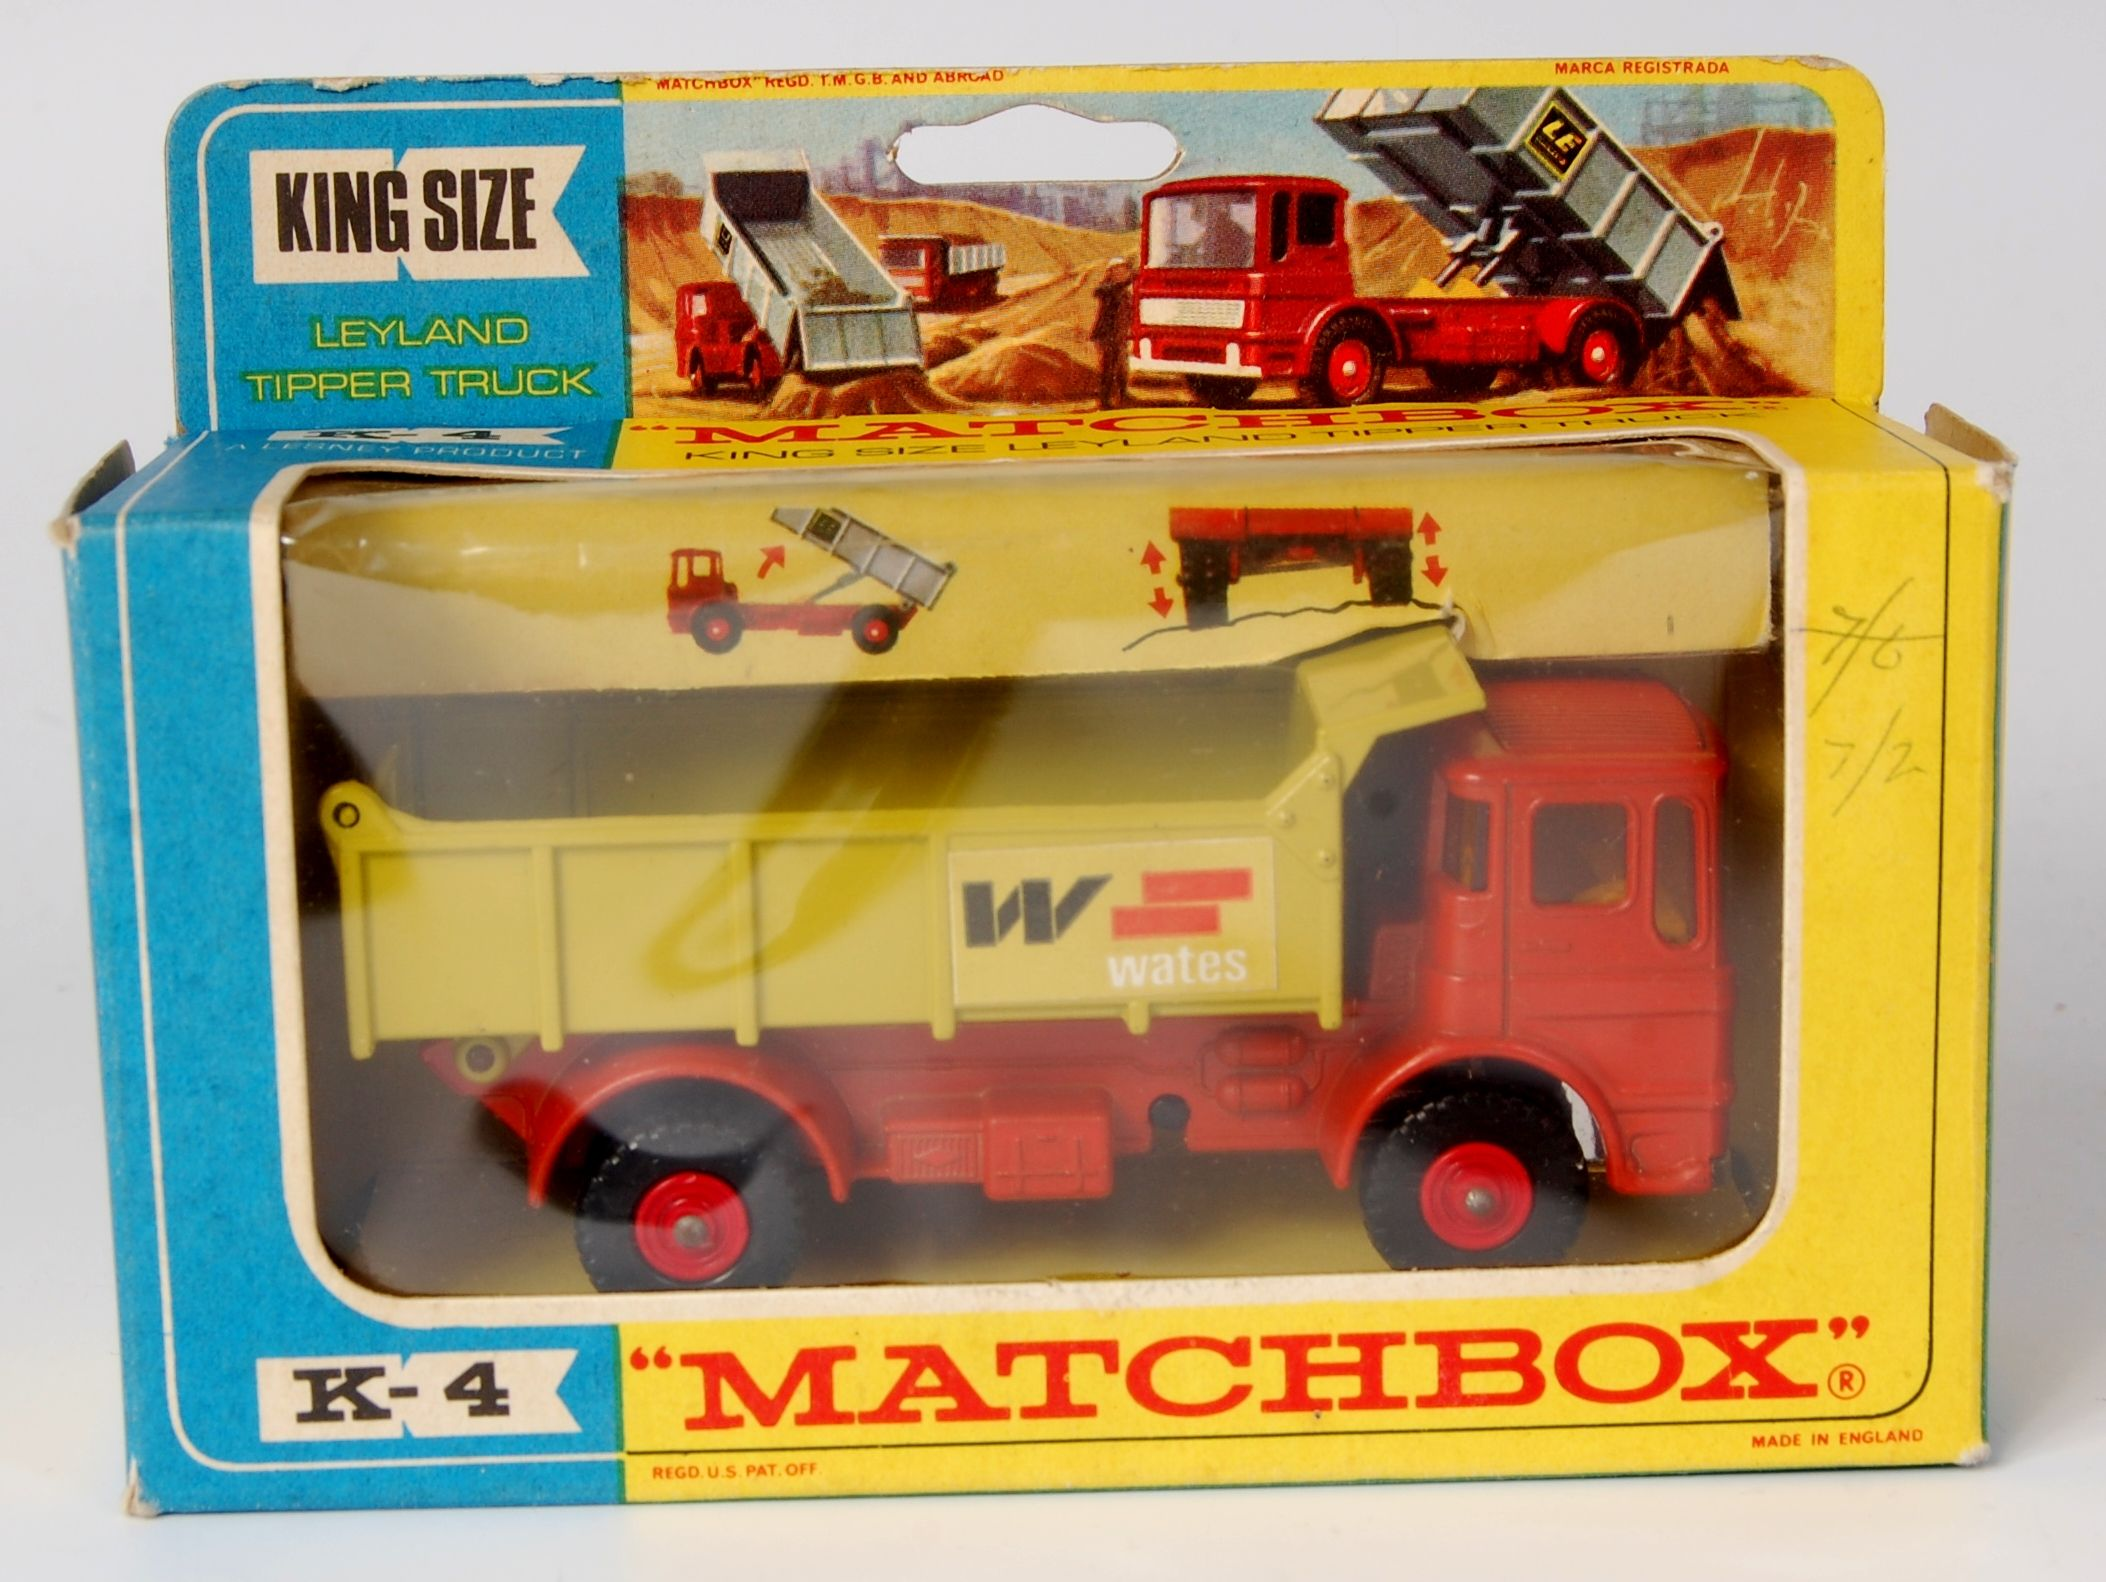 Toys cars 3  Lot   Matchbox Kingsize K Leyland tipper truck  Corgi